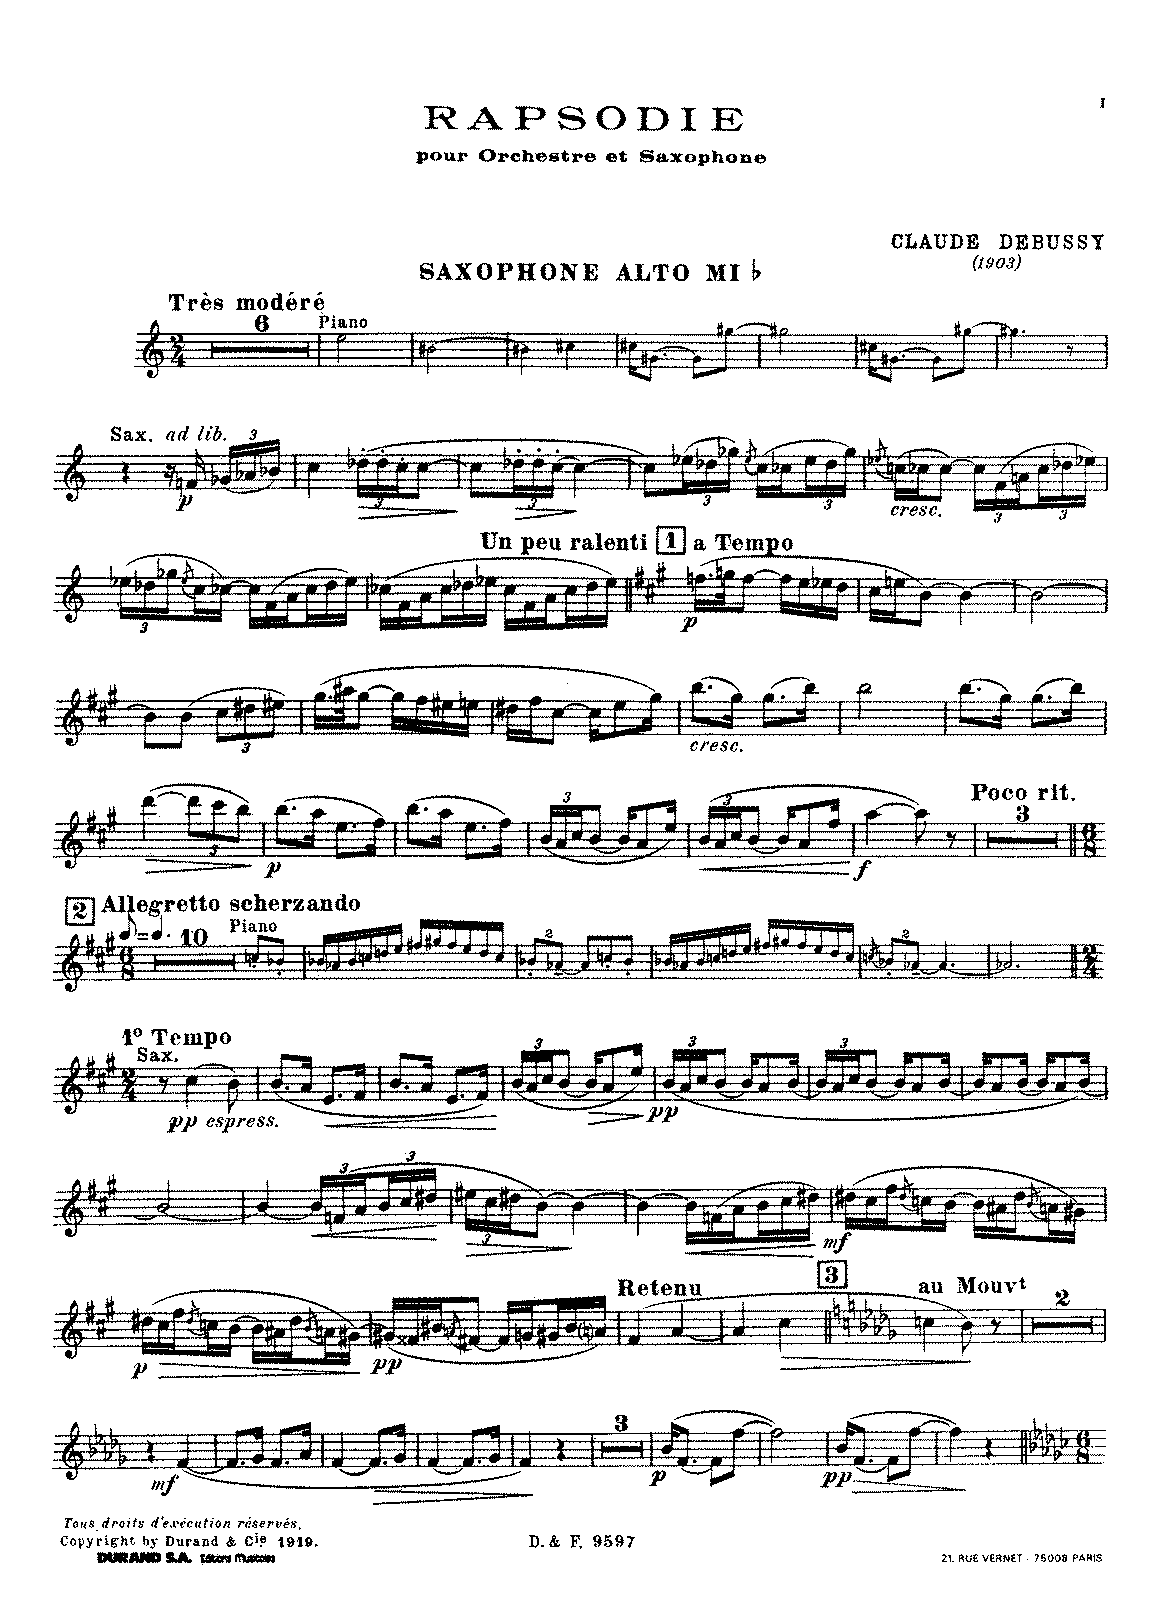 Debussy - Rapsodie for Orchestra and Saxophone (sax. and piano).pdf